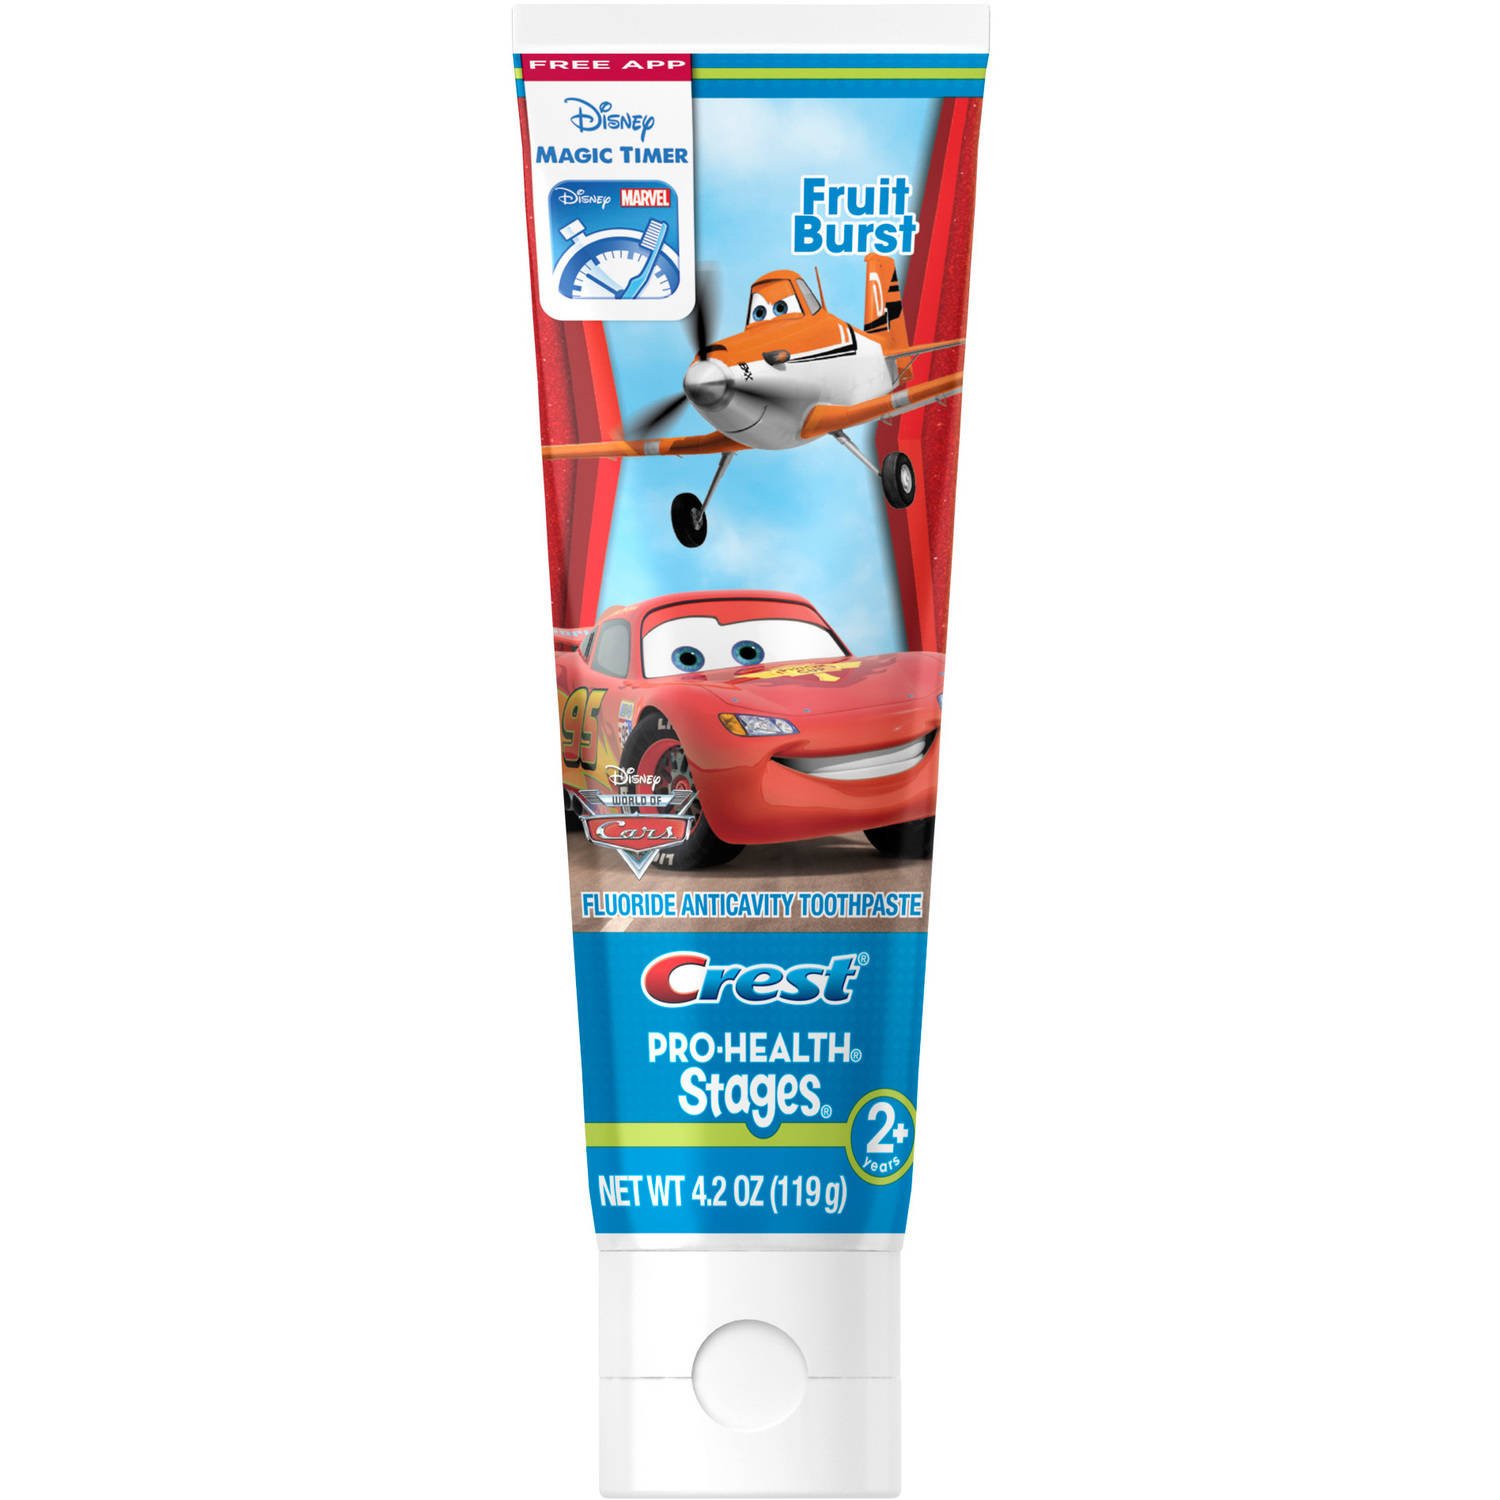 Crest Pro-Health Stages Kids Toothpaste featuring Disney Pixar Cars and Planes with Disney MagicTimer App by Oral-B, 4.2 oz